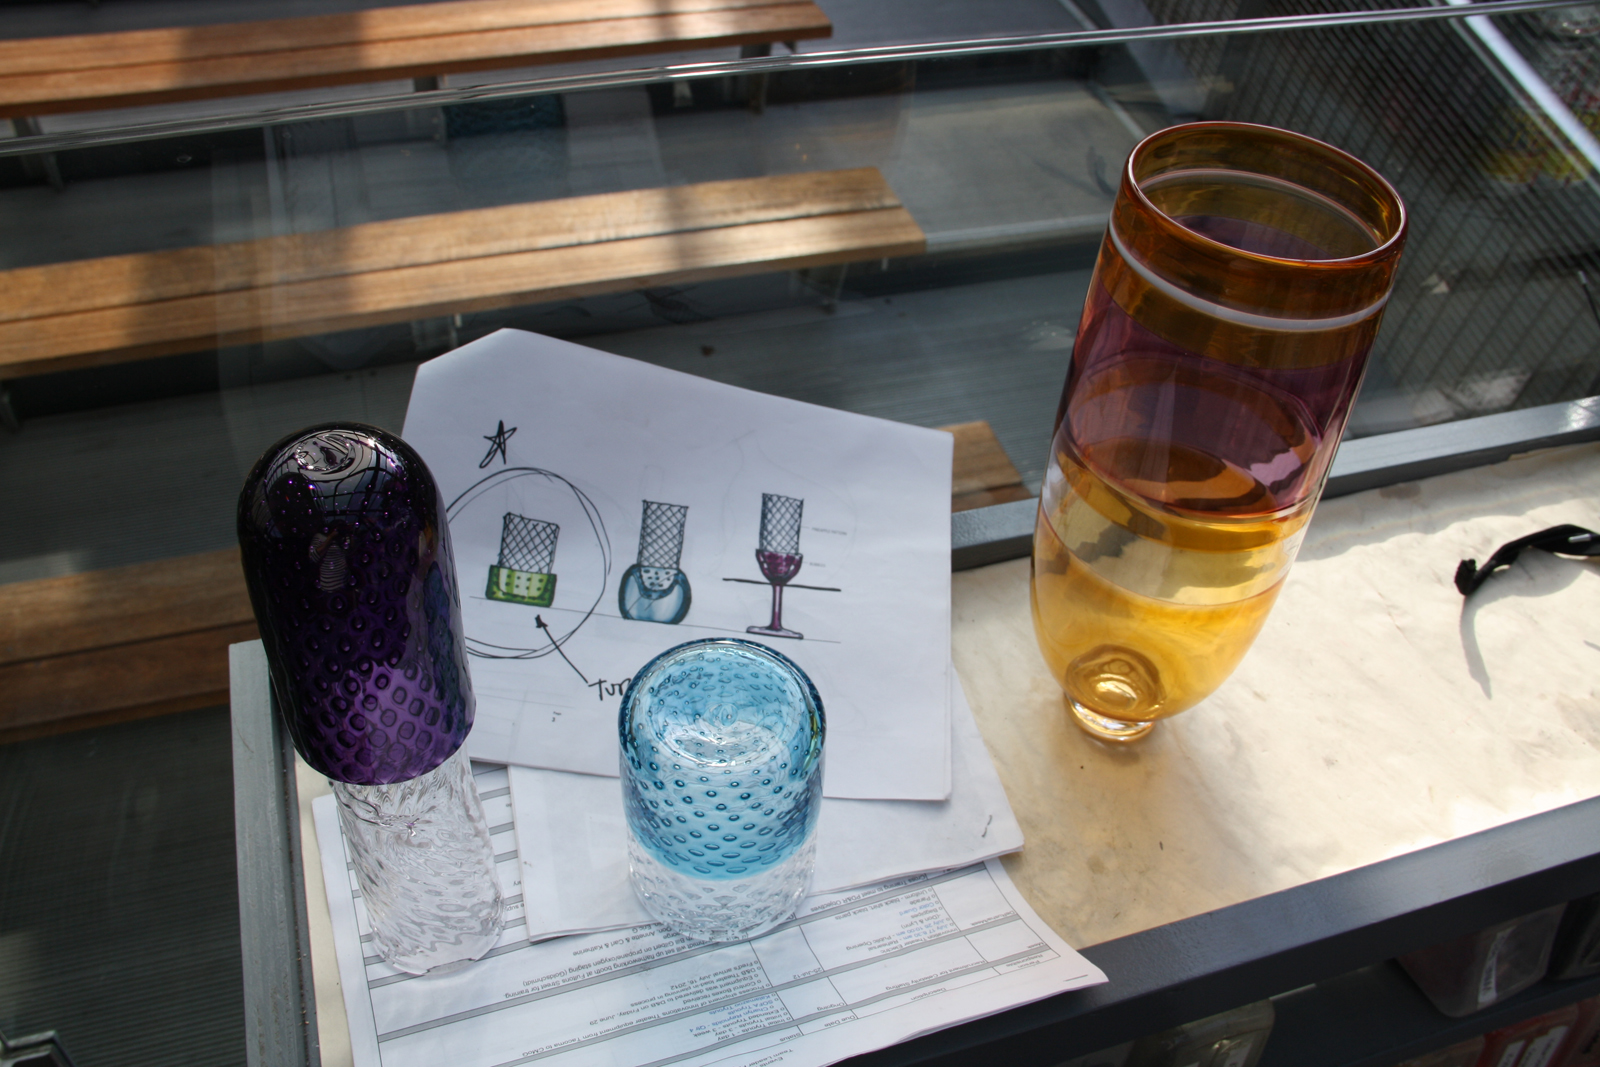 Prototypes and design drawings by Harry Allen and Chris Hacker for their GlassLab design session.